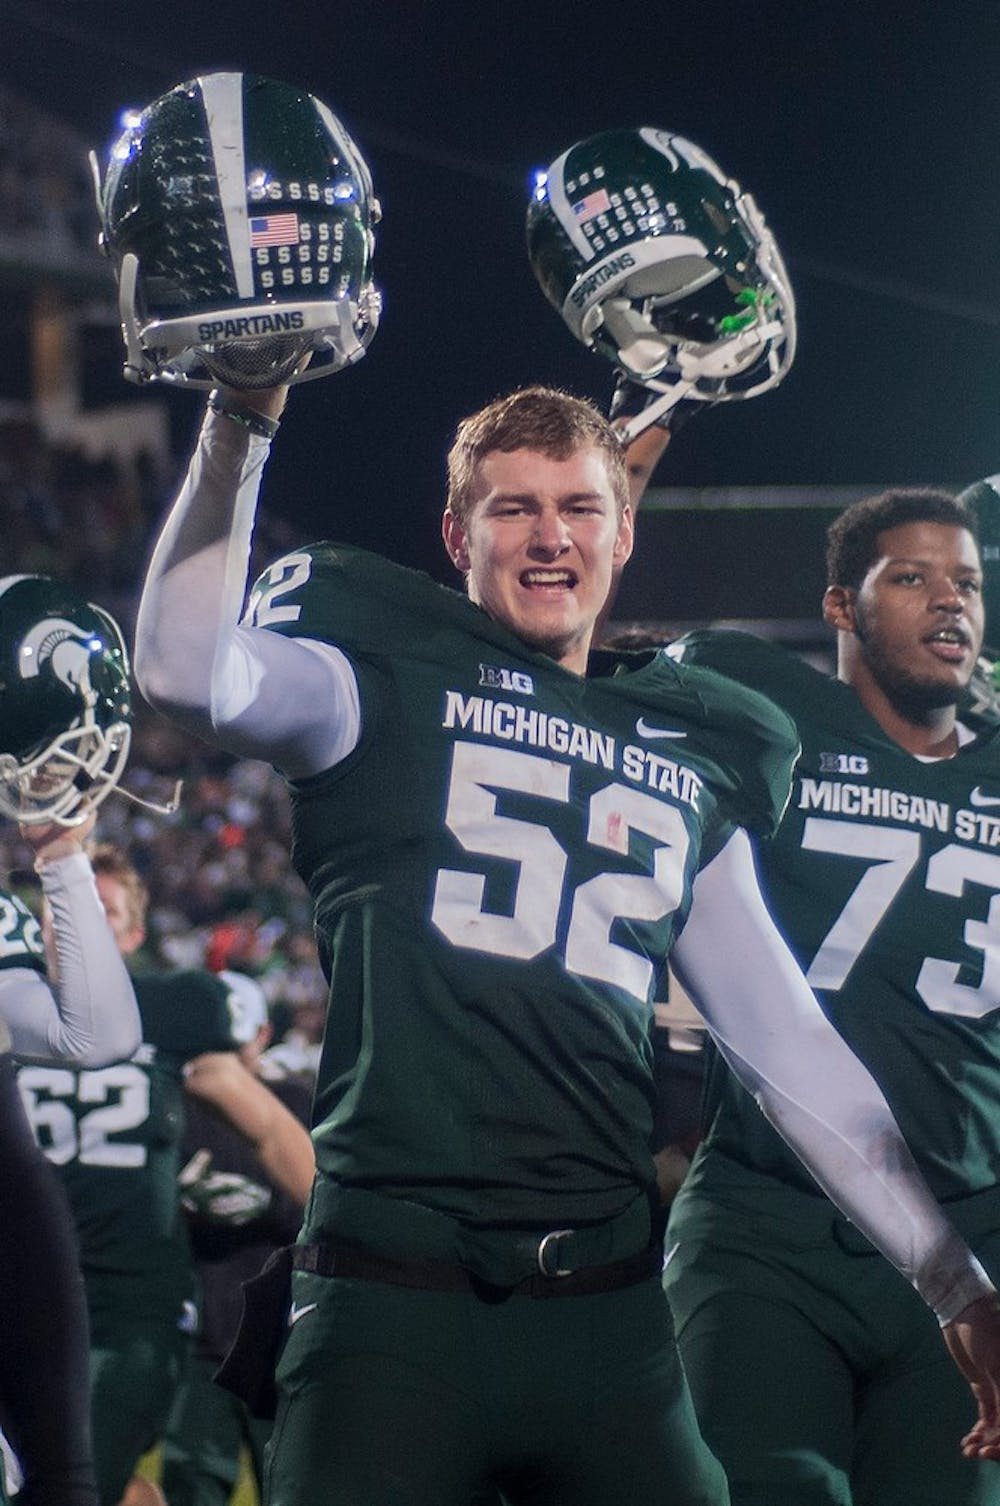 "<p>Sophomore snapper Taybor Pepper celebrates at the end of the game against Michigan on Nov. 2, 2013, at Spartan Stadium. <span class=""caps"">MSU</span> defeated the Wolverines, 29-6. Danyelle Morrow/The State News</p>"